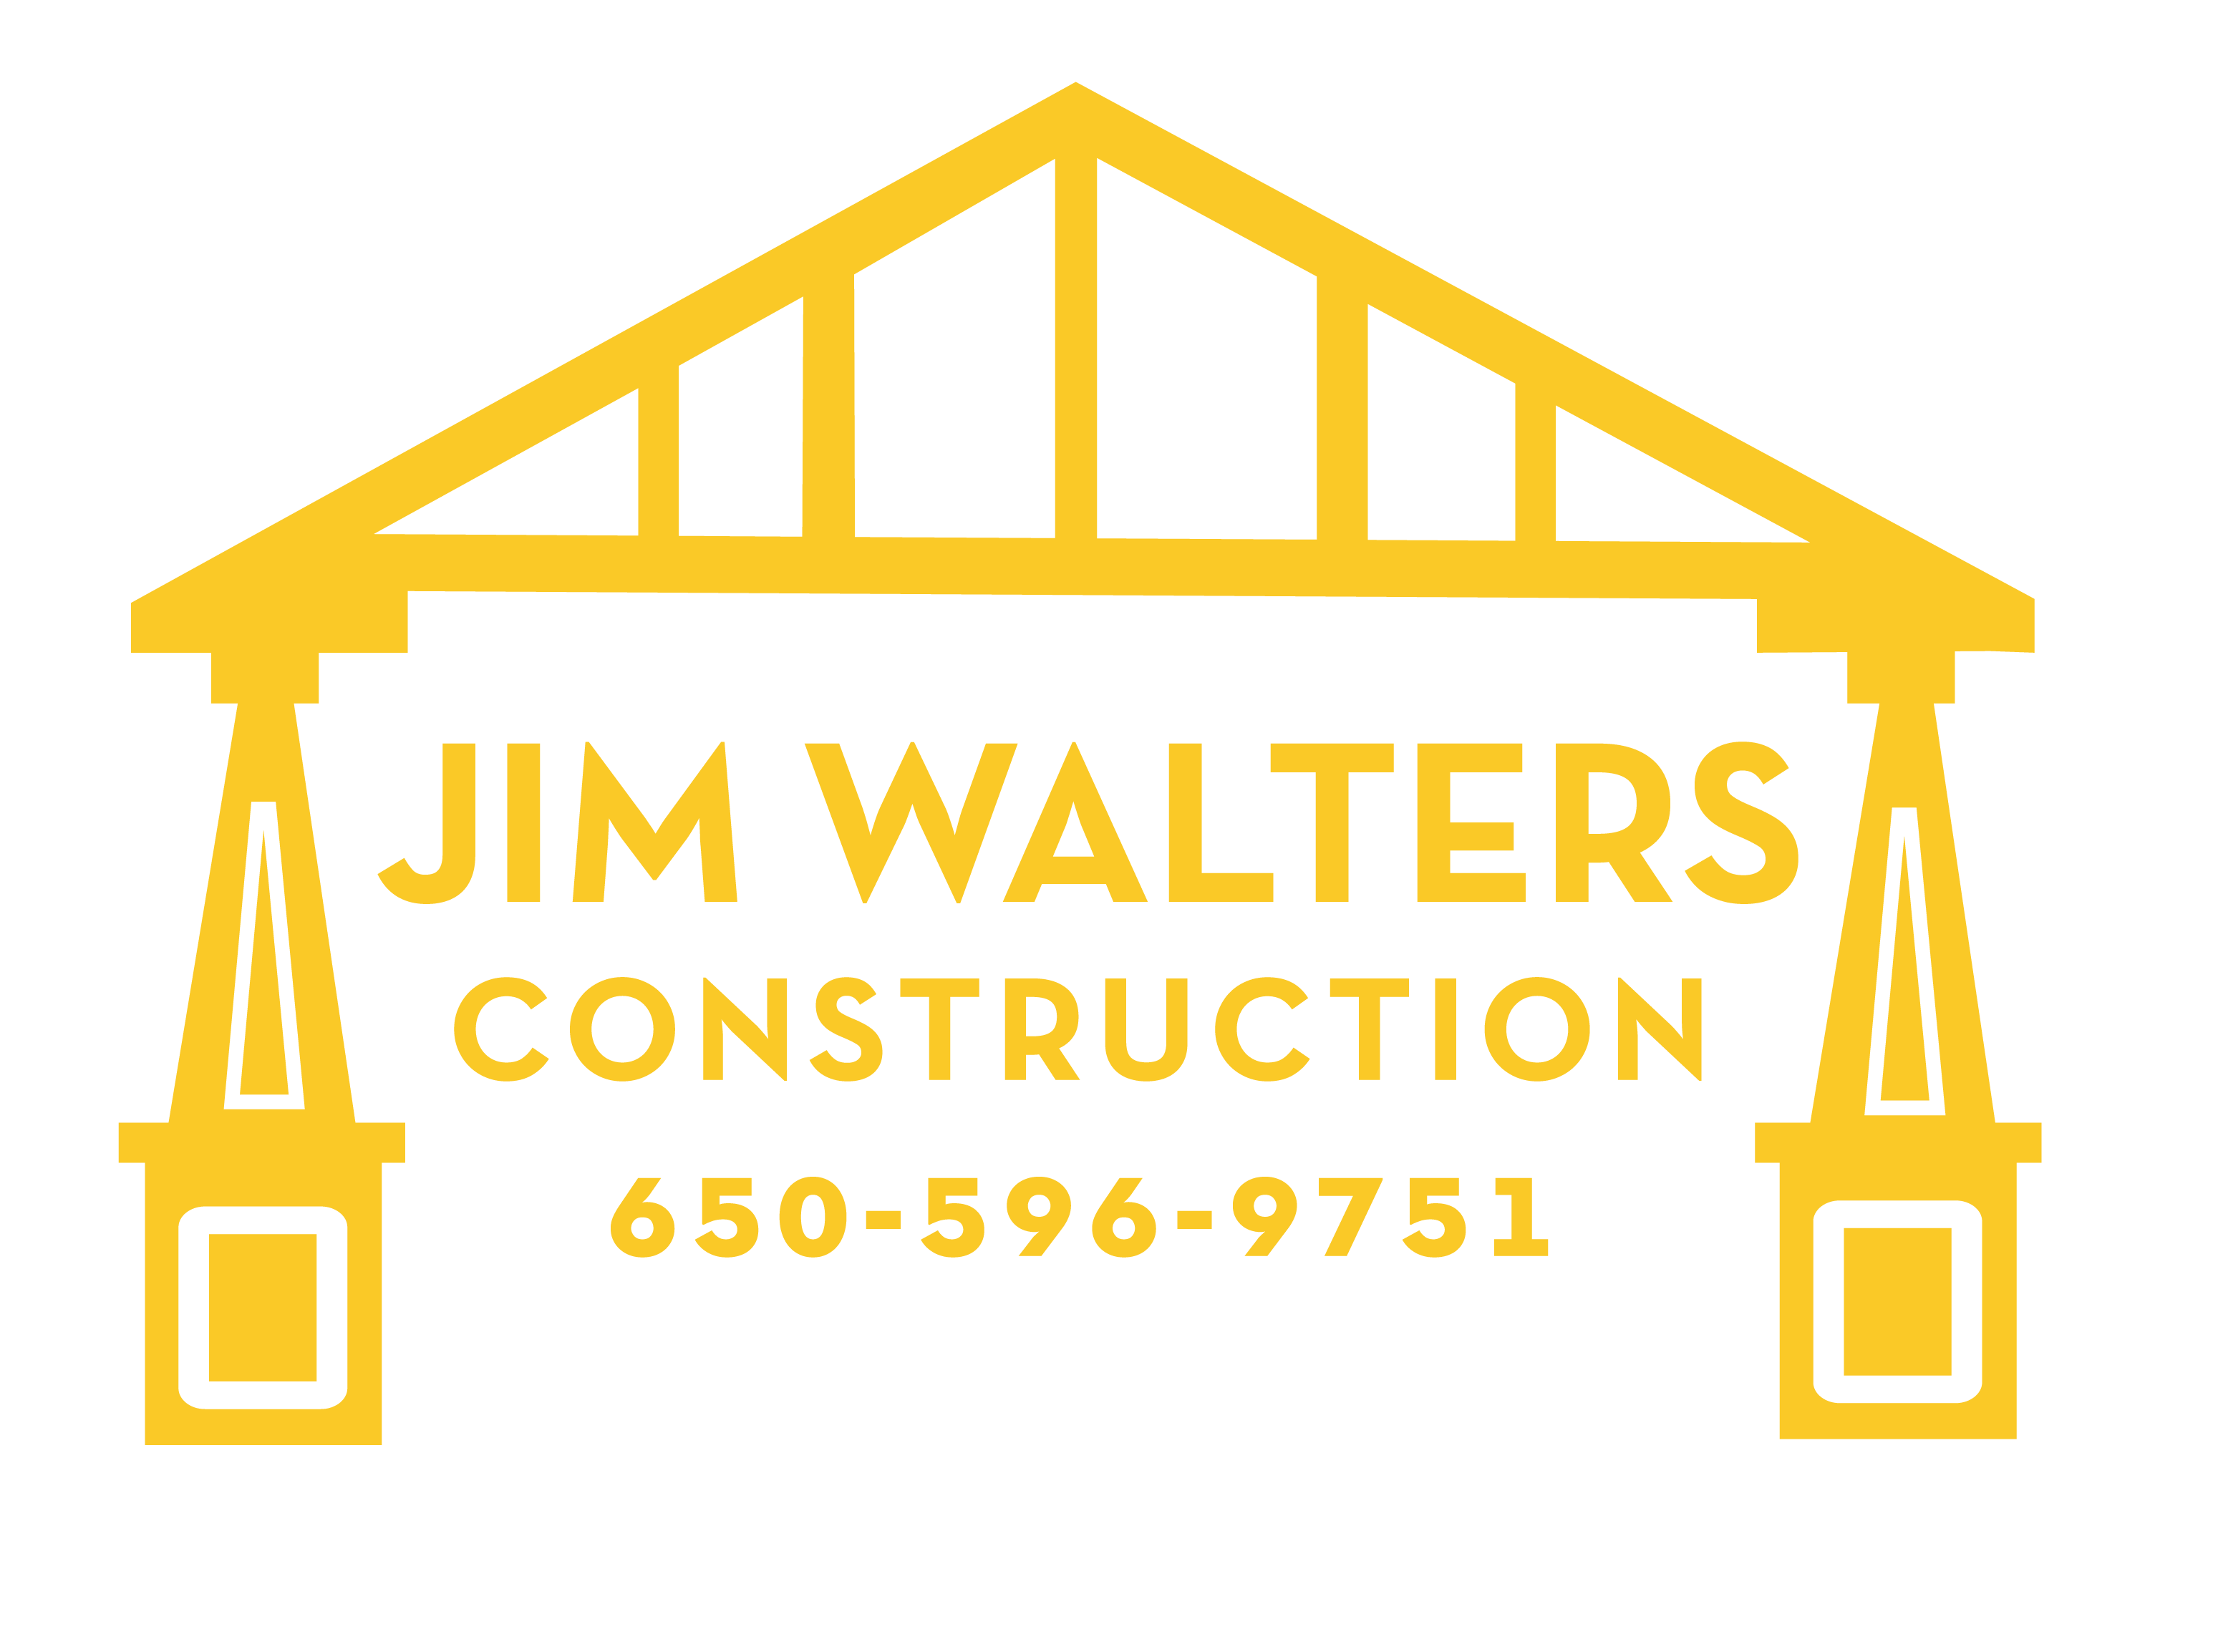 Jim Walters Construction